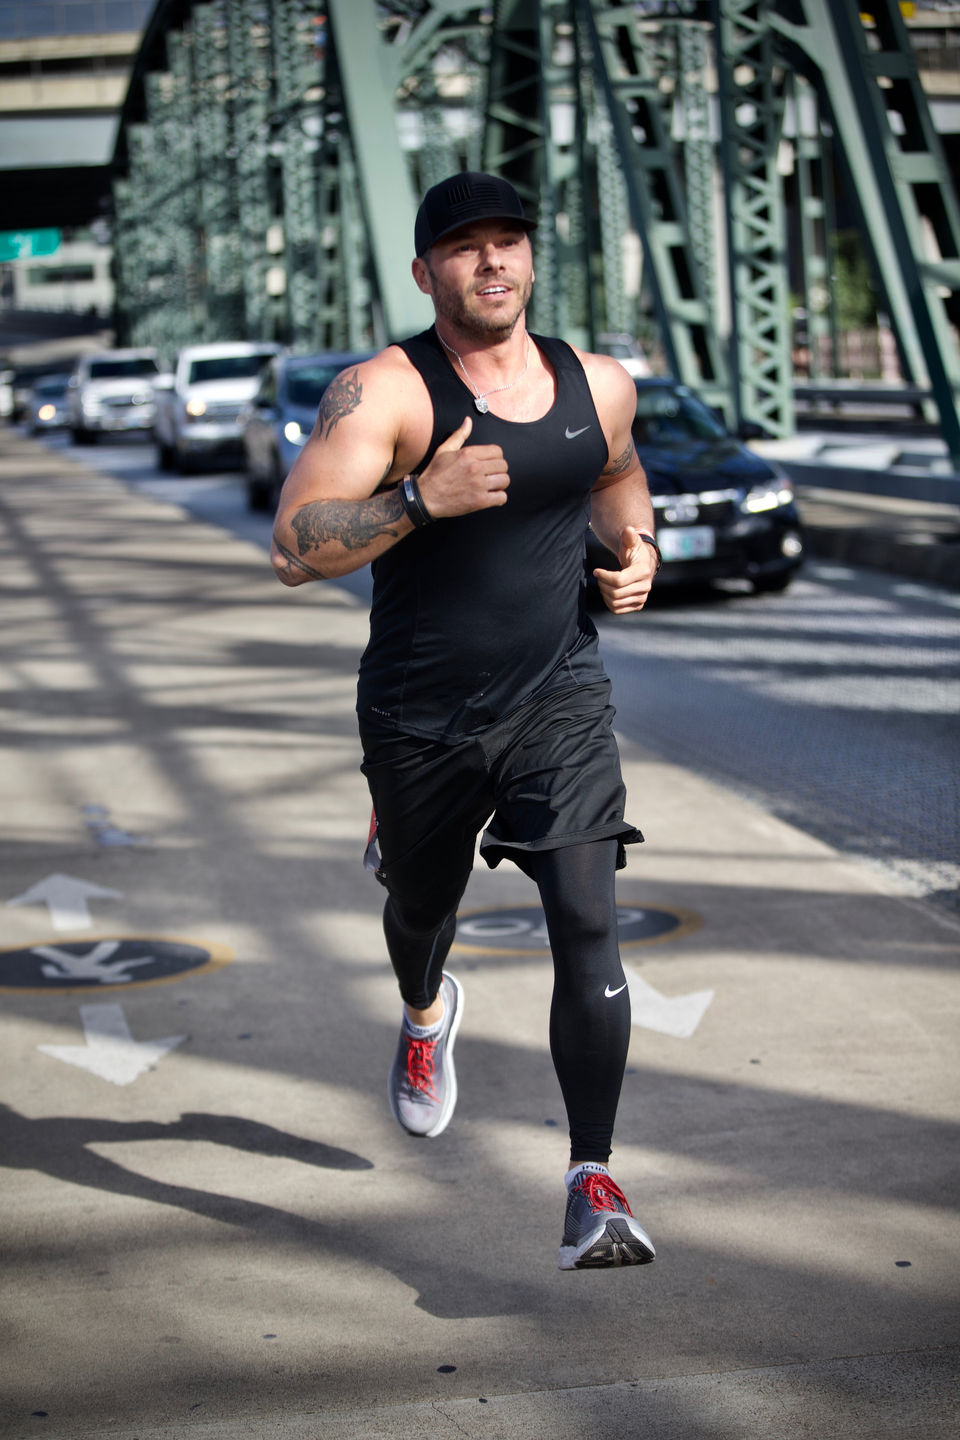 Hood To Coast Relay Race Passes Through Portland Free Of Smoke And Basic Rules Scorching Heat